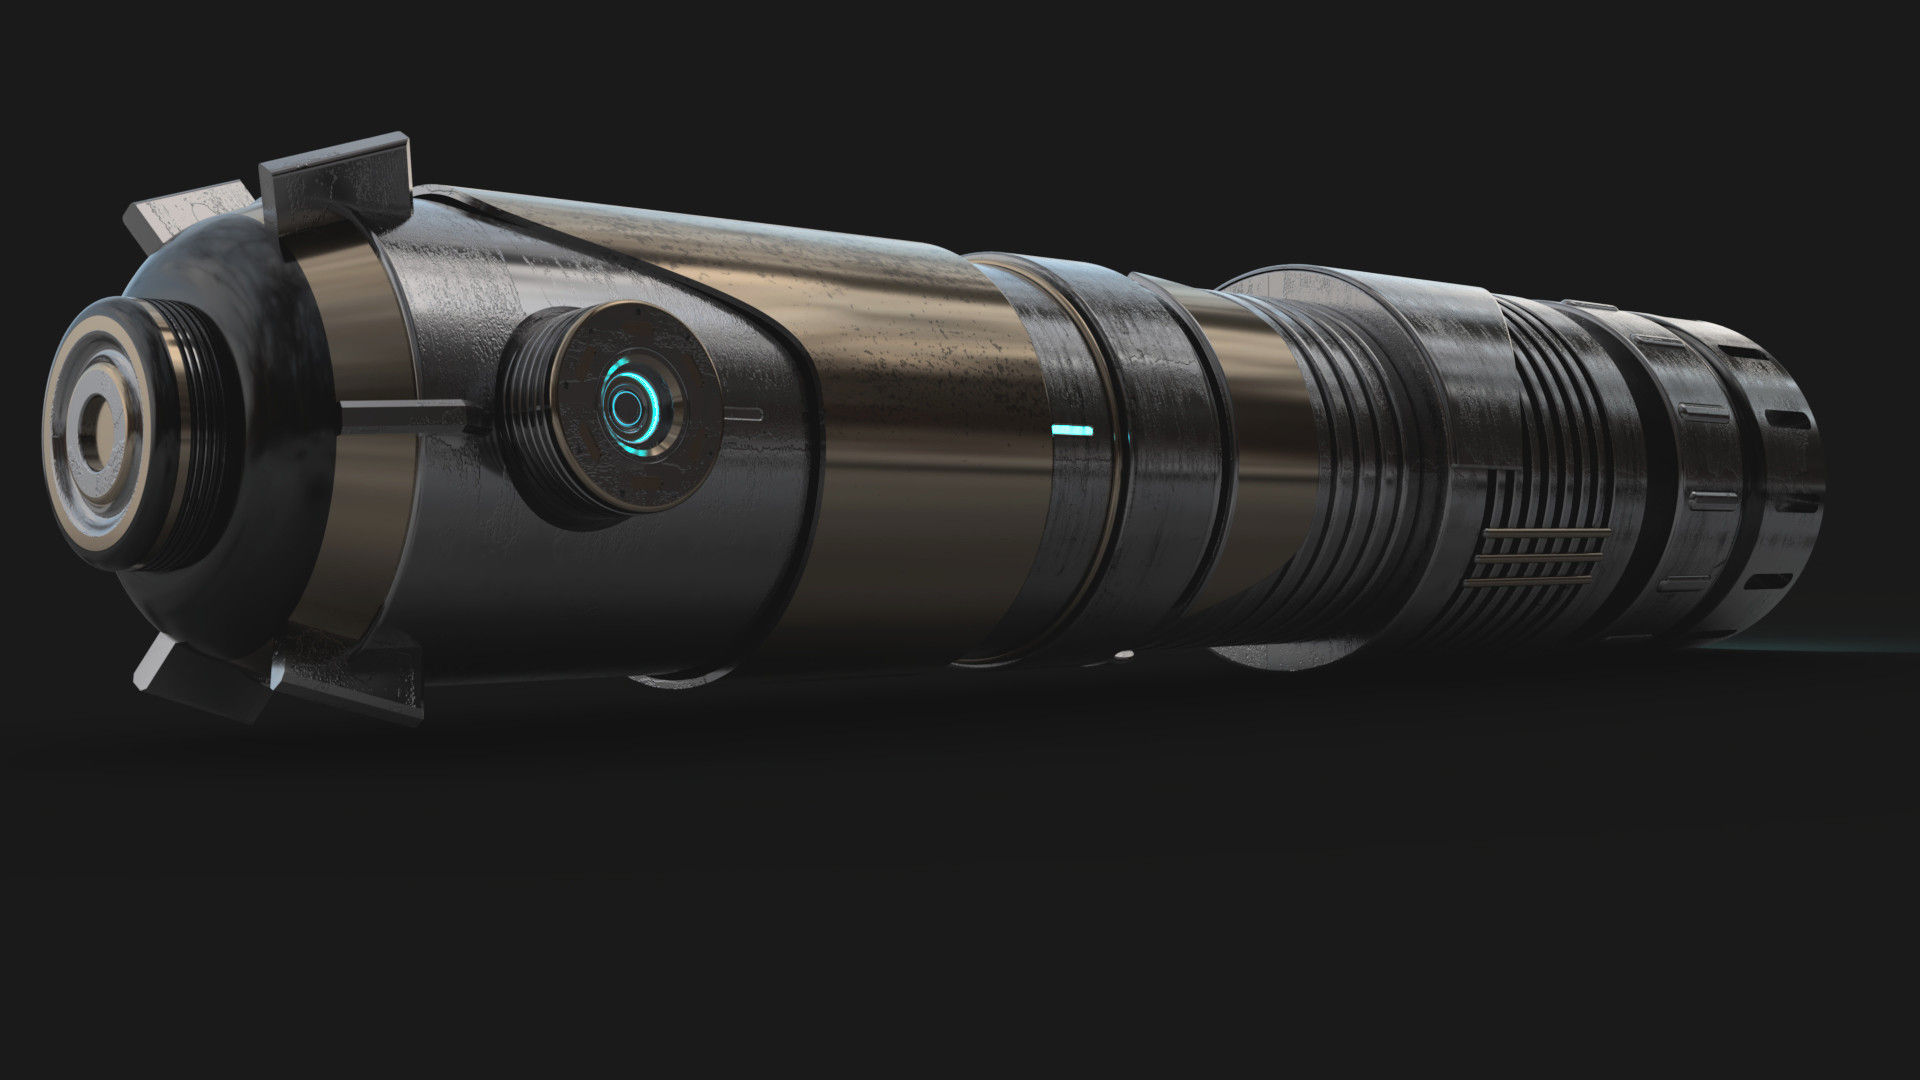 Joaquin-bozicovich-lightsaber-portfo-2018-feb-02-03-43-33am-000-customizedview43011270256-jpeg-3500-3500